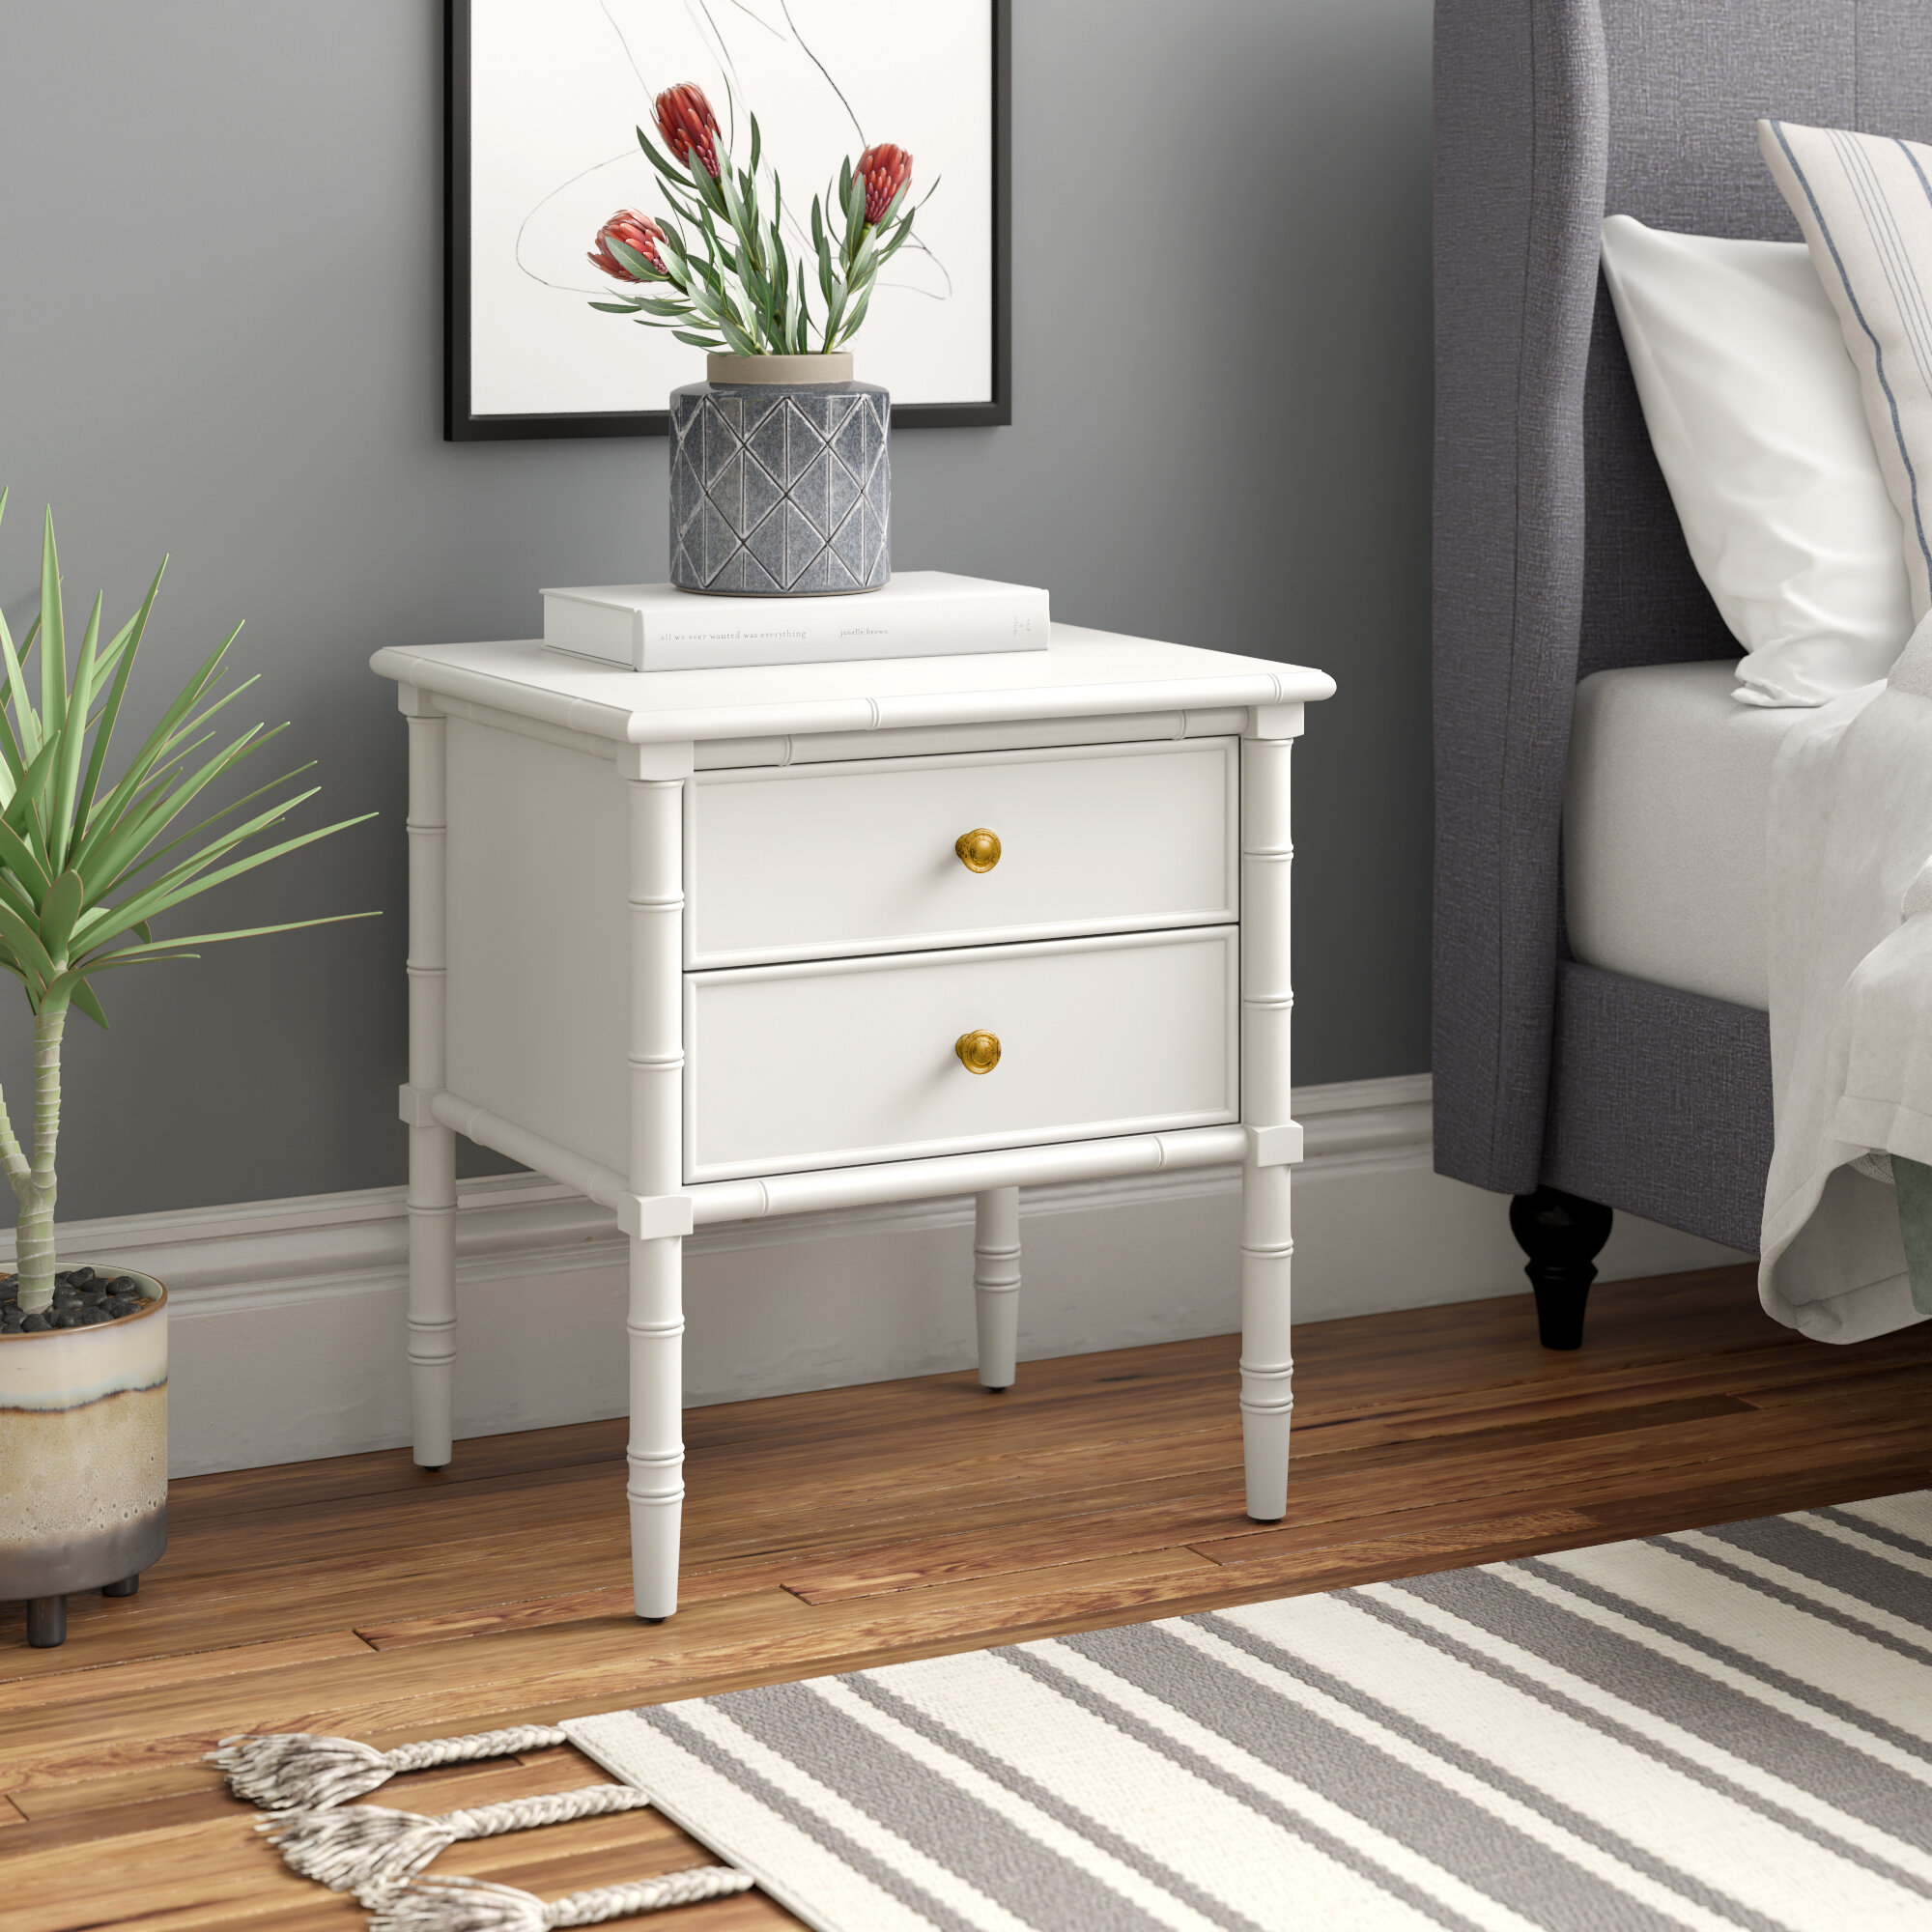 Kristian 2 Drawer Nightstand Reviews Joss Main